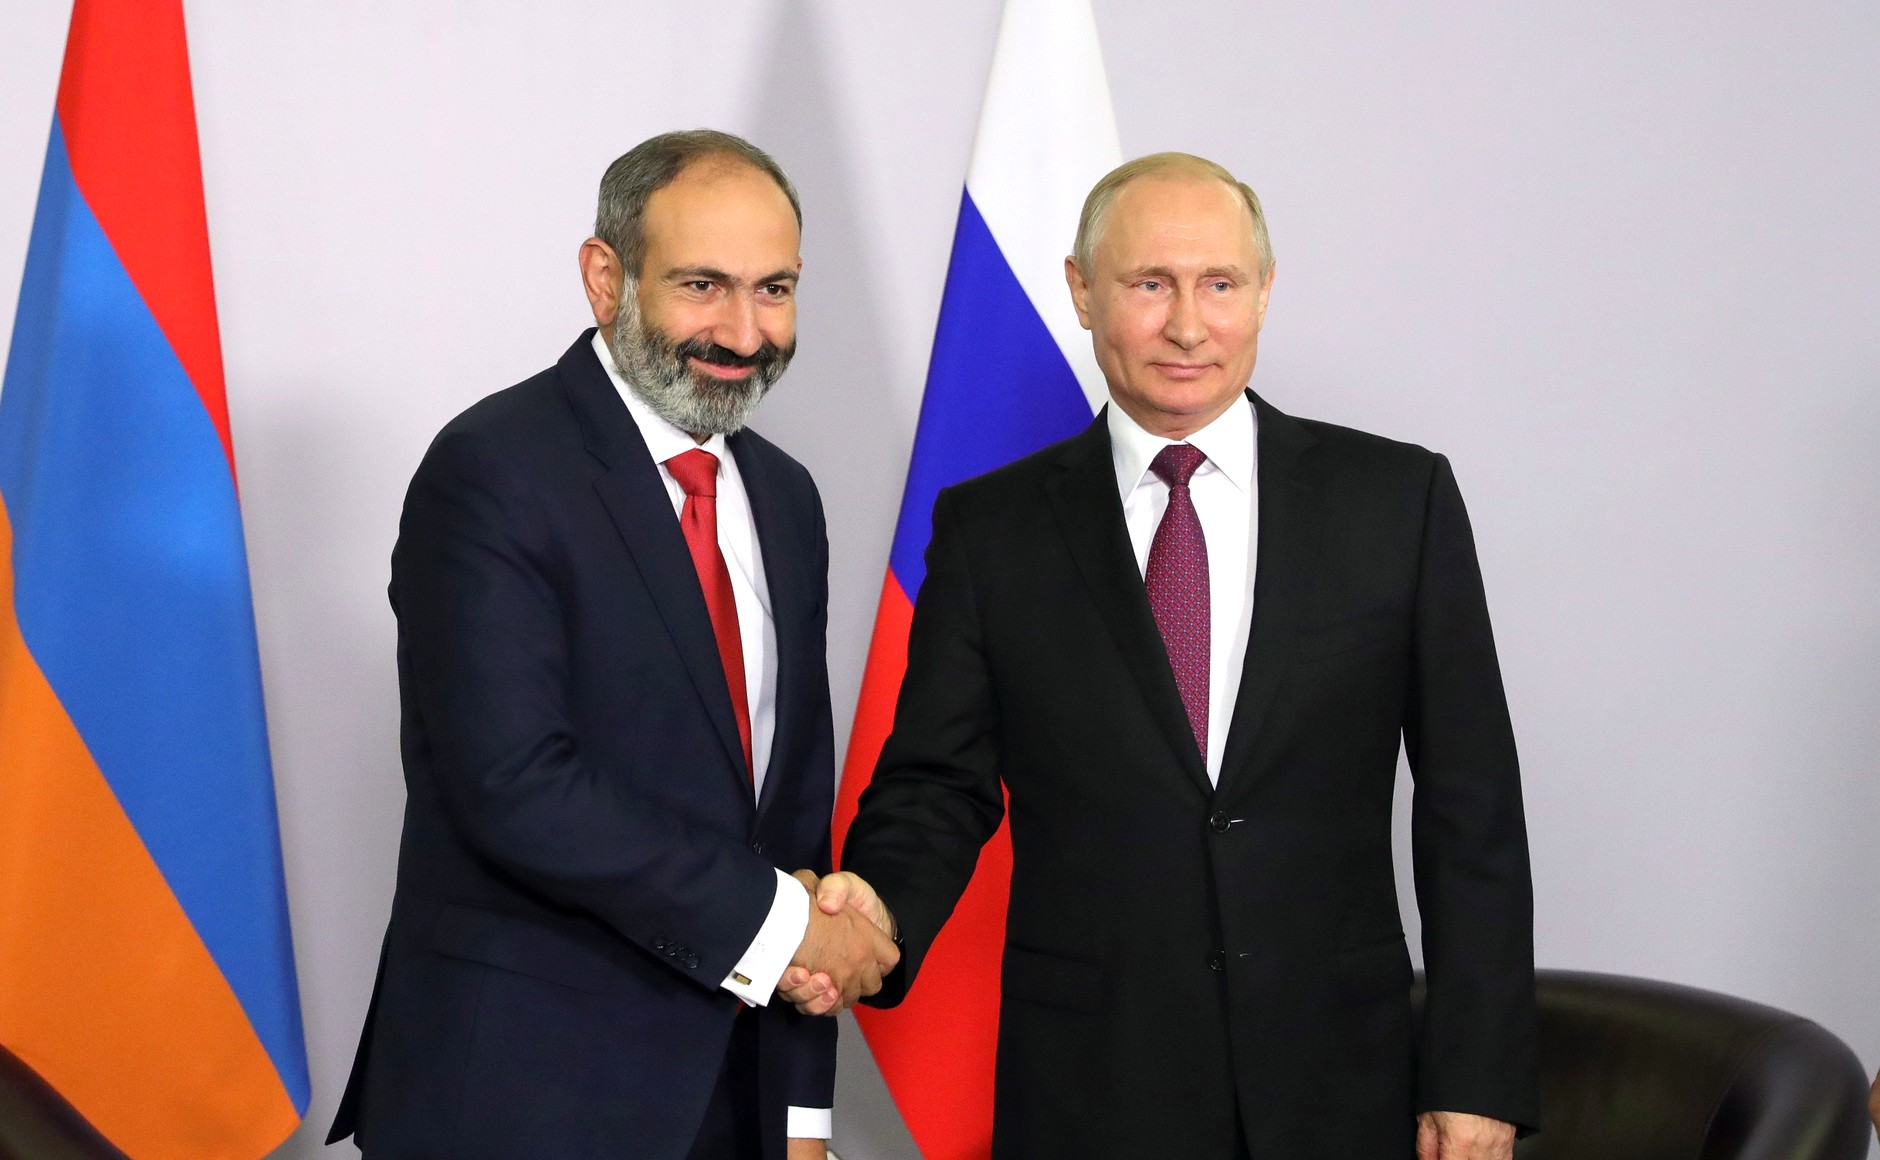 Armenian Prime Minister Nikol Pashinyan pictured meeting with Russian President Vladimir Putin in May 2018 (Wikimedia Commons).